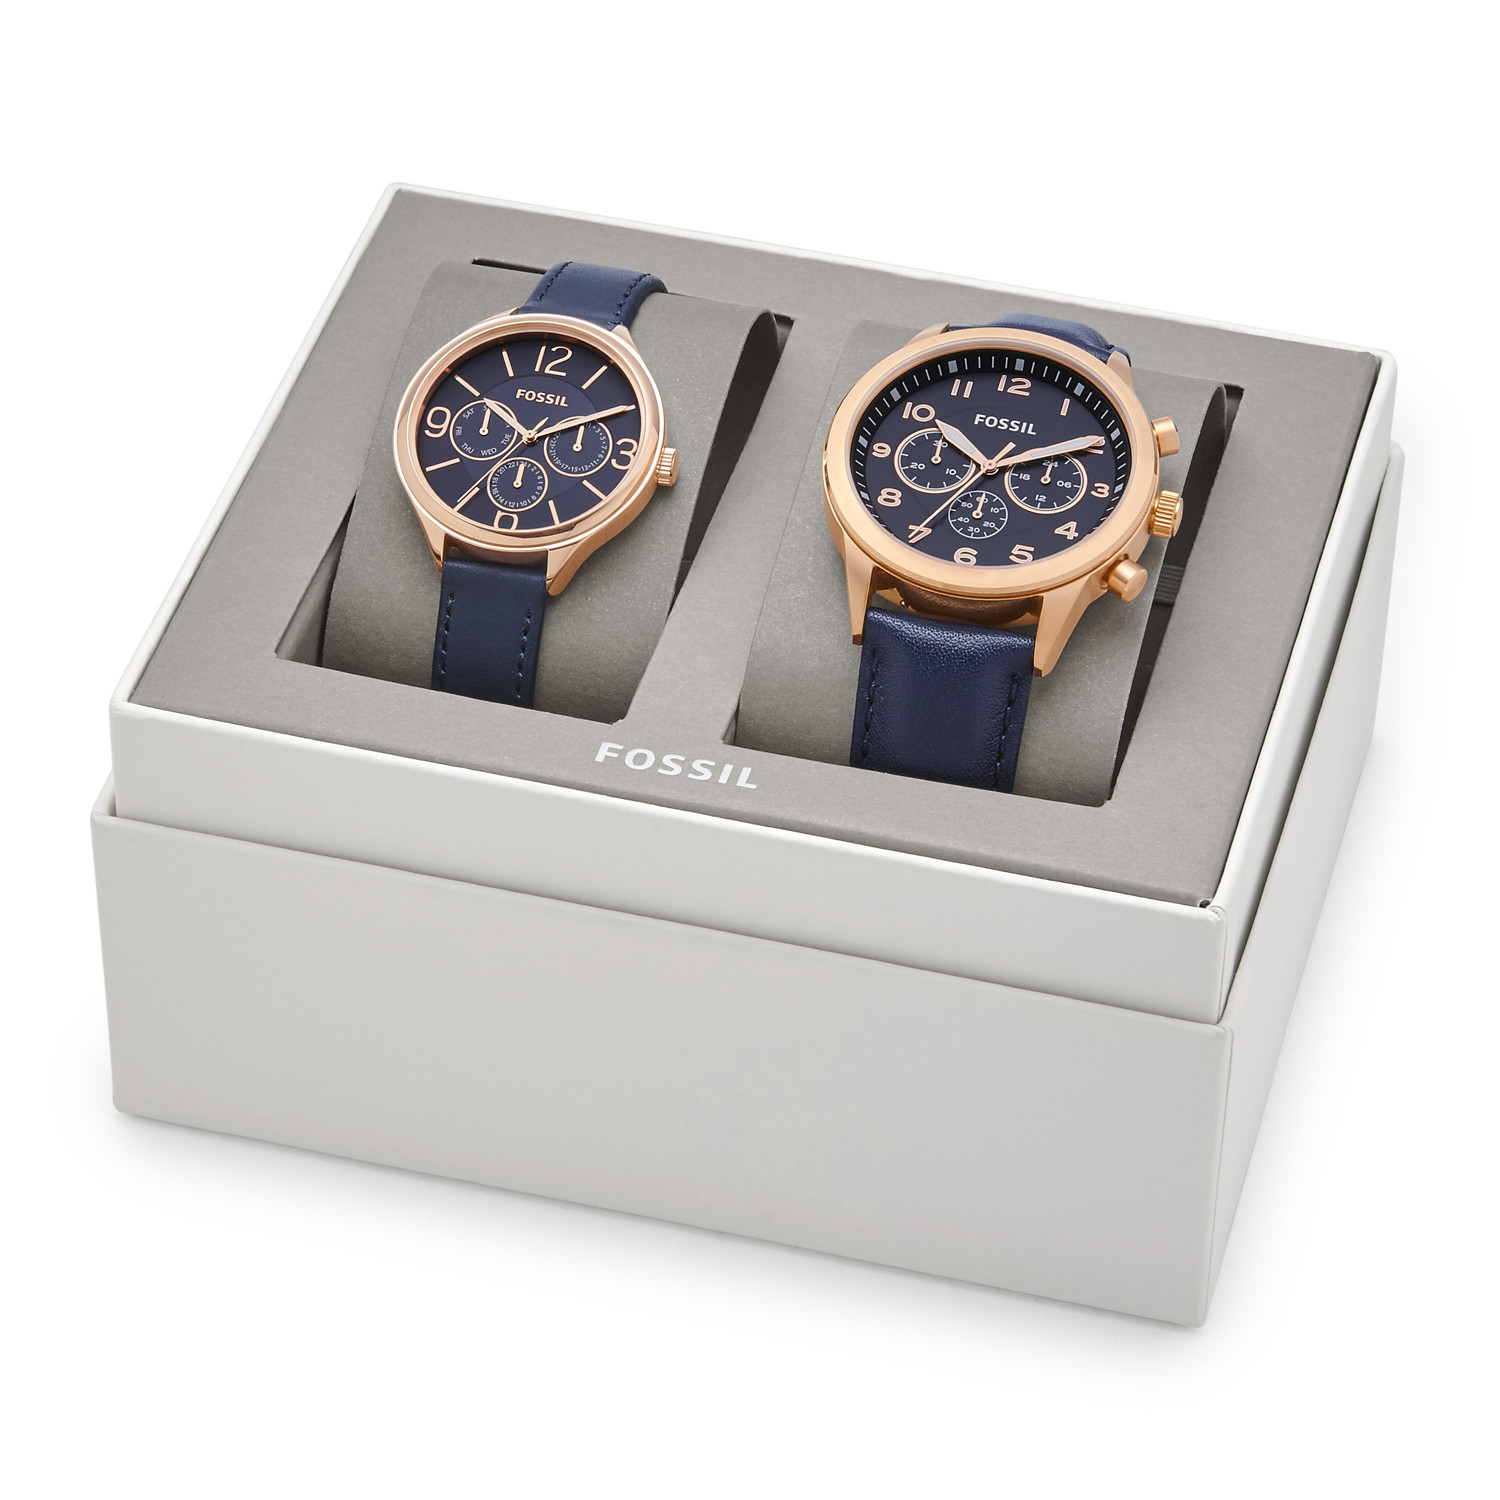 dc275e73f03d His Chronograph and Her Multifunction Navy Leather Watch Gift Set ...